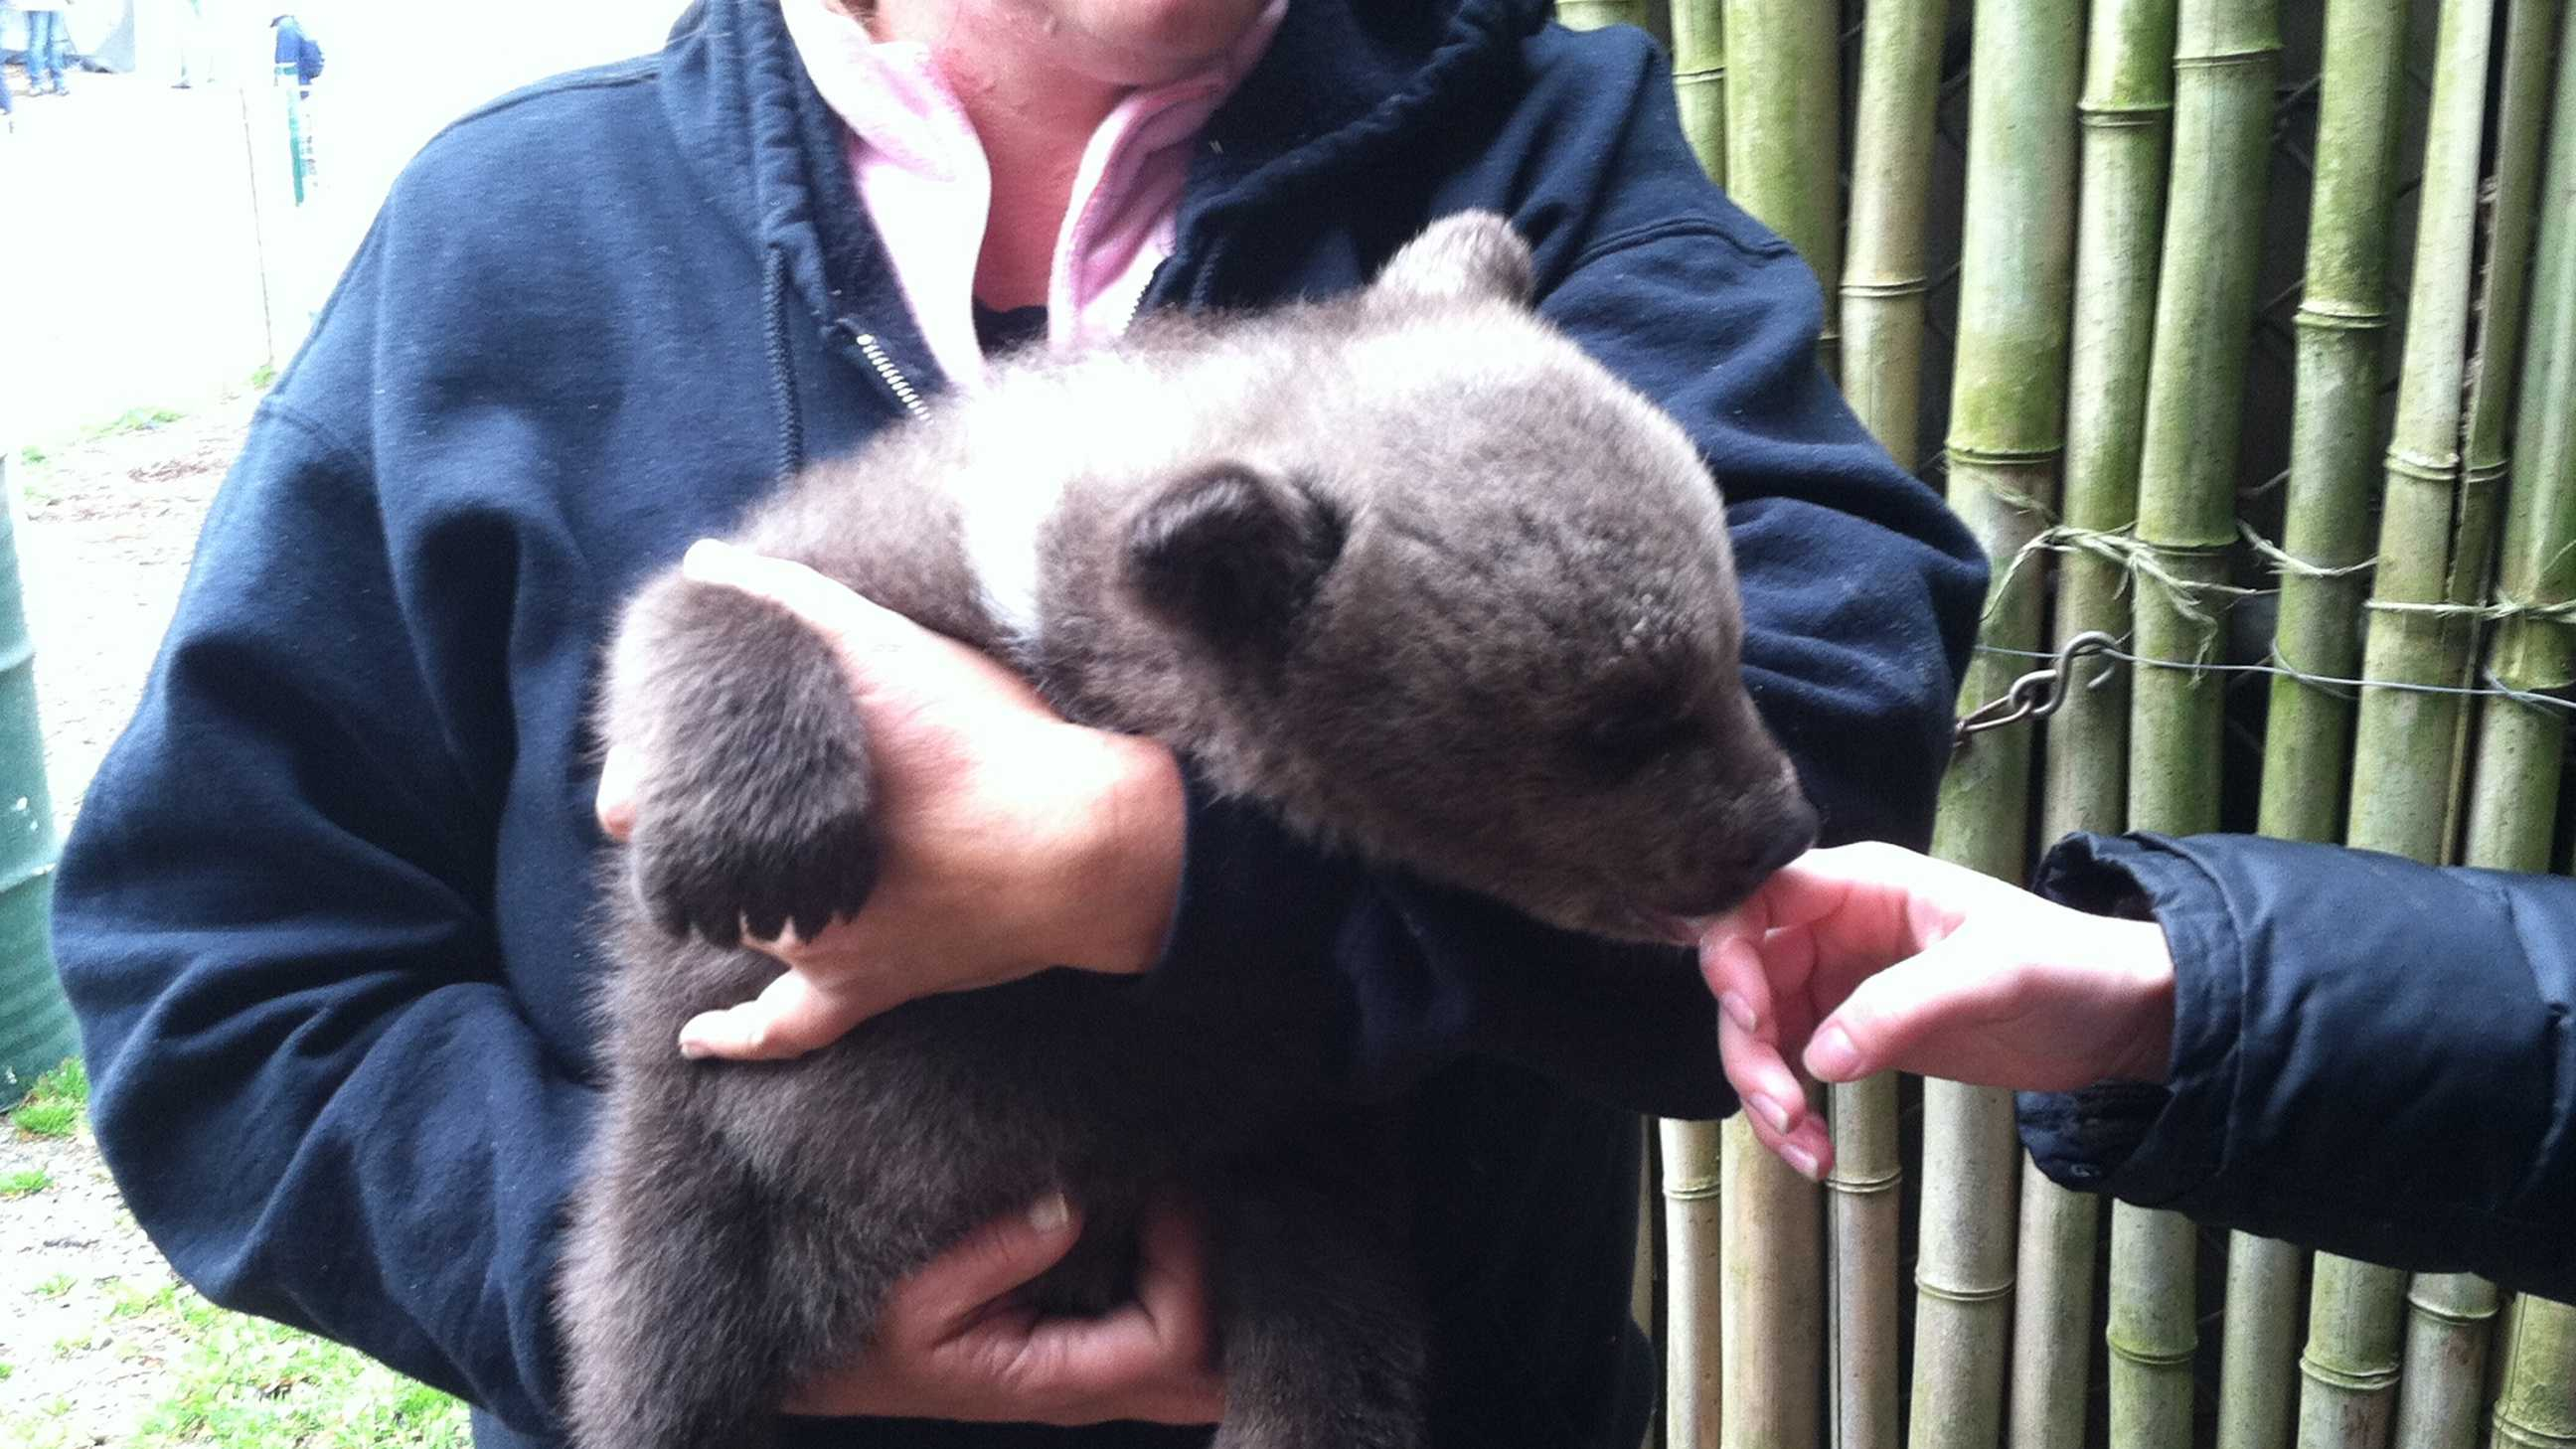 A Syrian brown bear cub makes her public debut at Hollywild Animal Park.